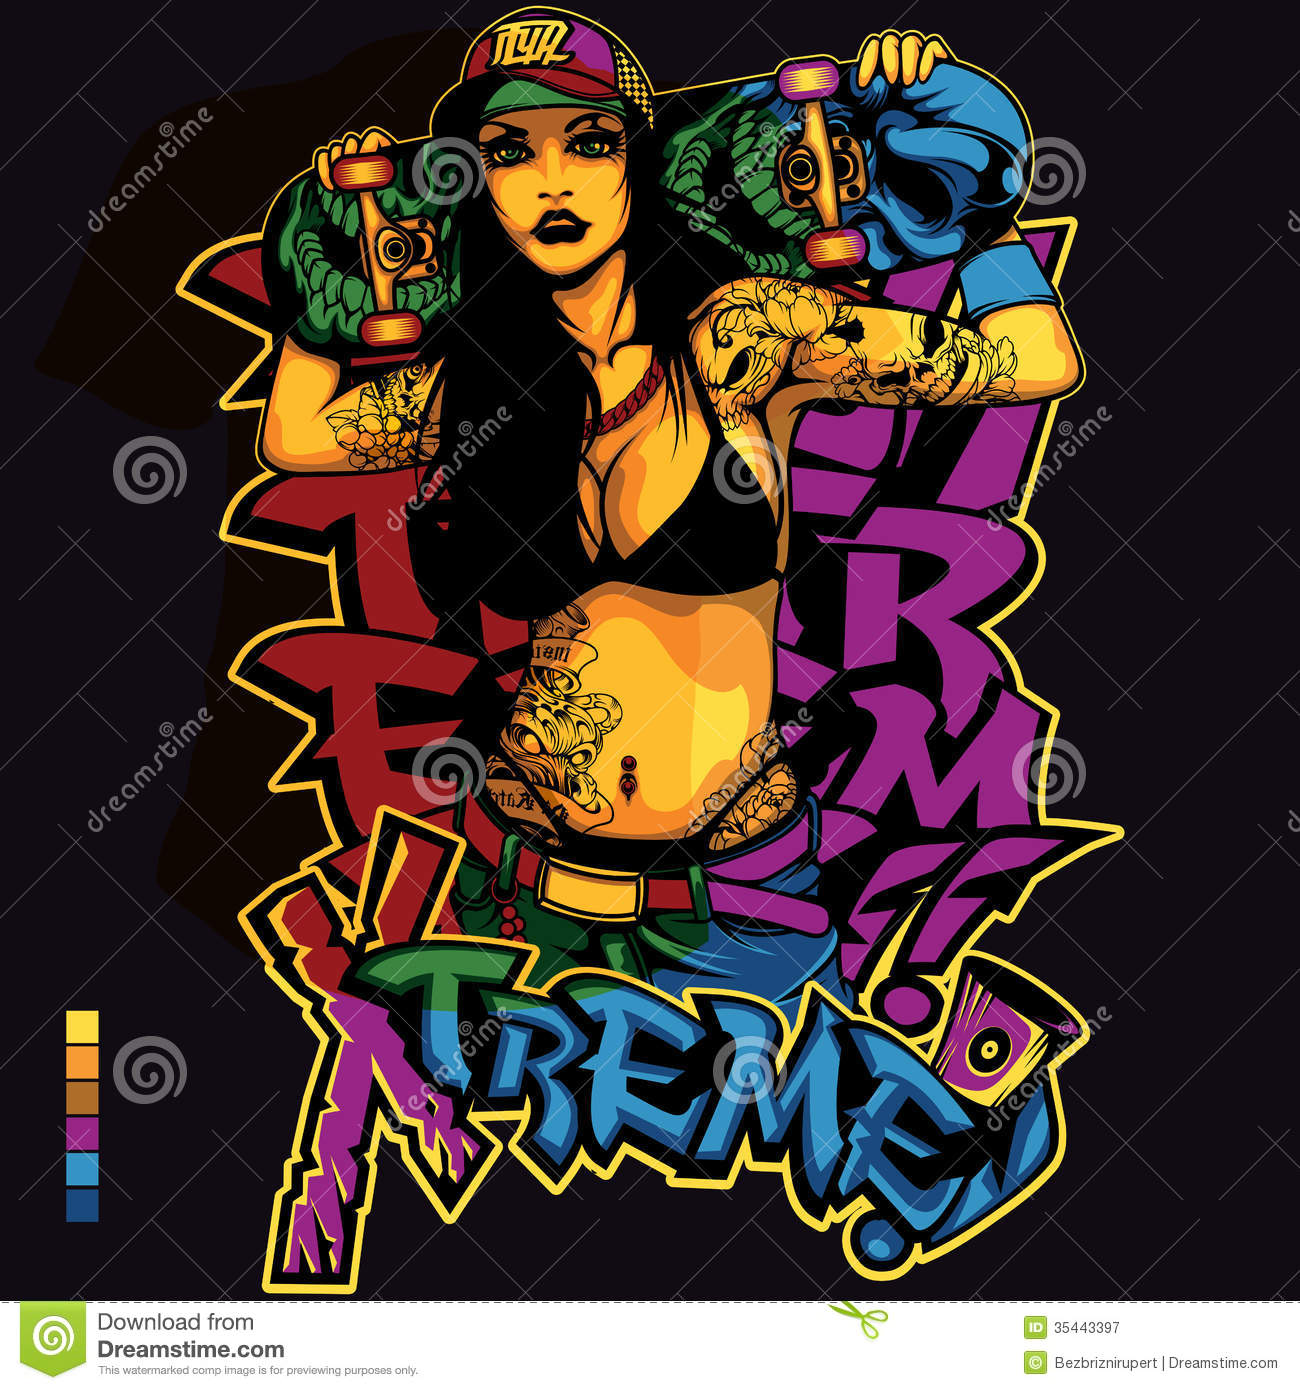 T shirt design hip hop - Hip Hop Girl Shirt Design